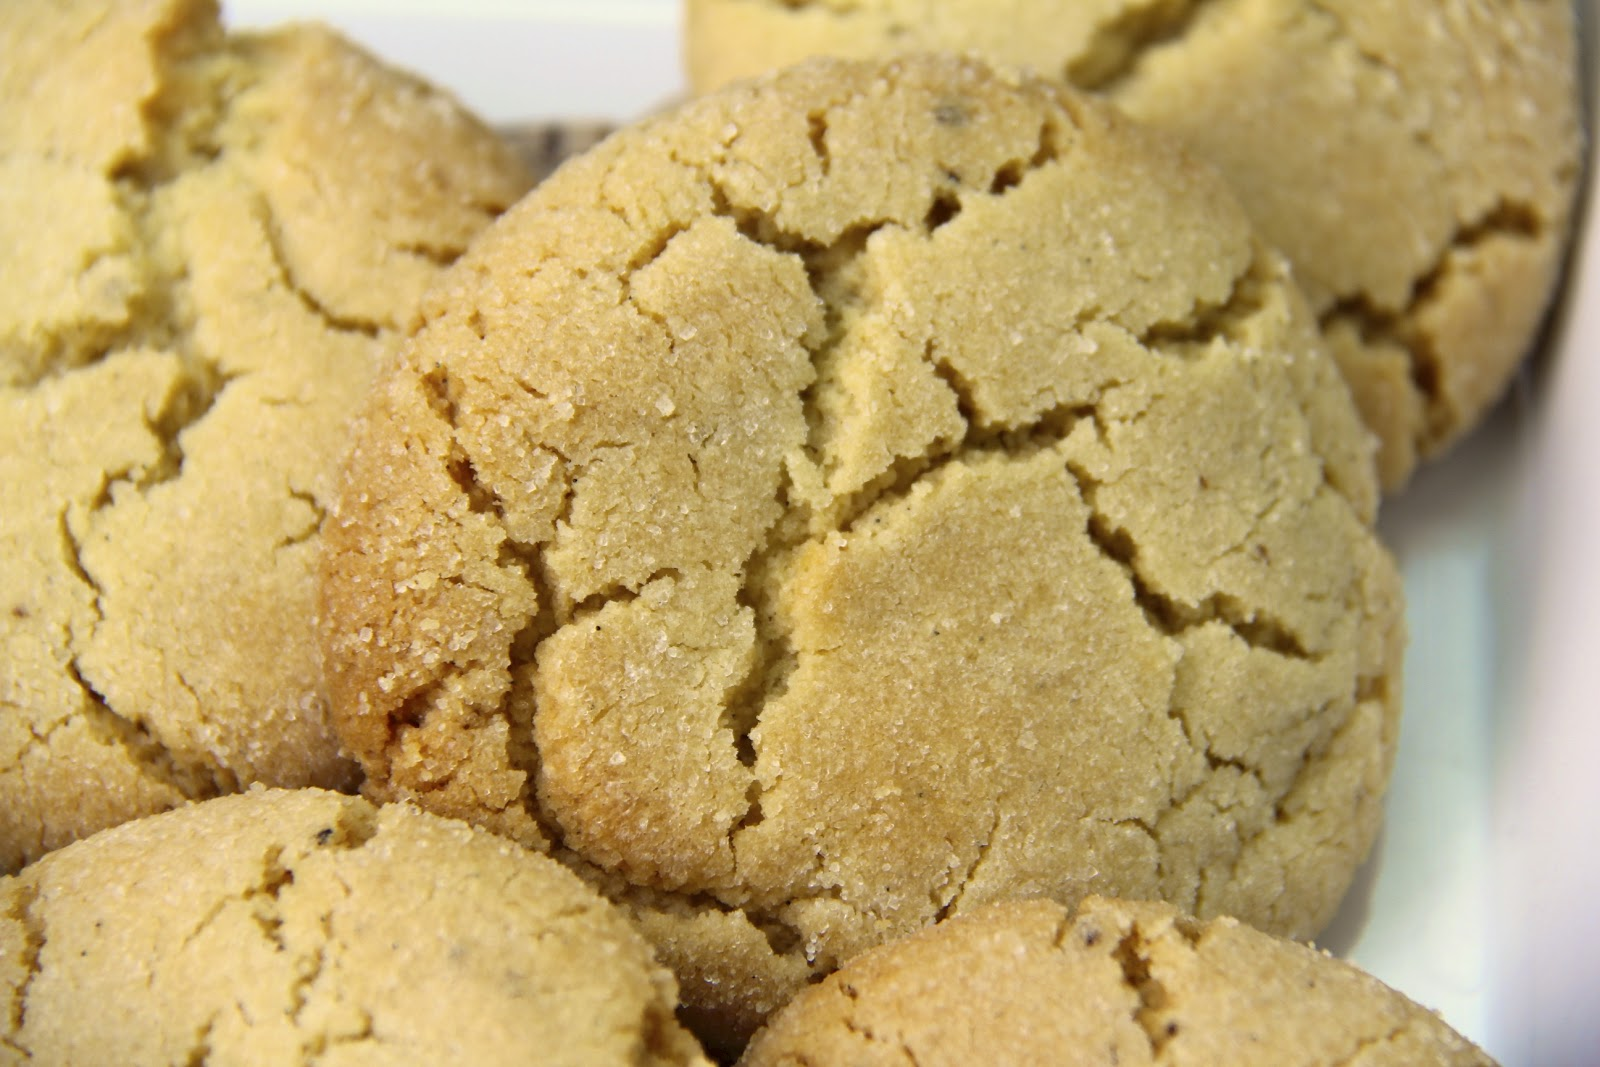 ... vanilla sugar in the cookies resulting in quite phenomenal vanilla